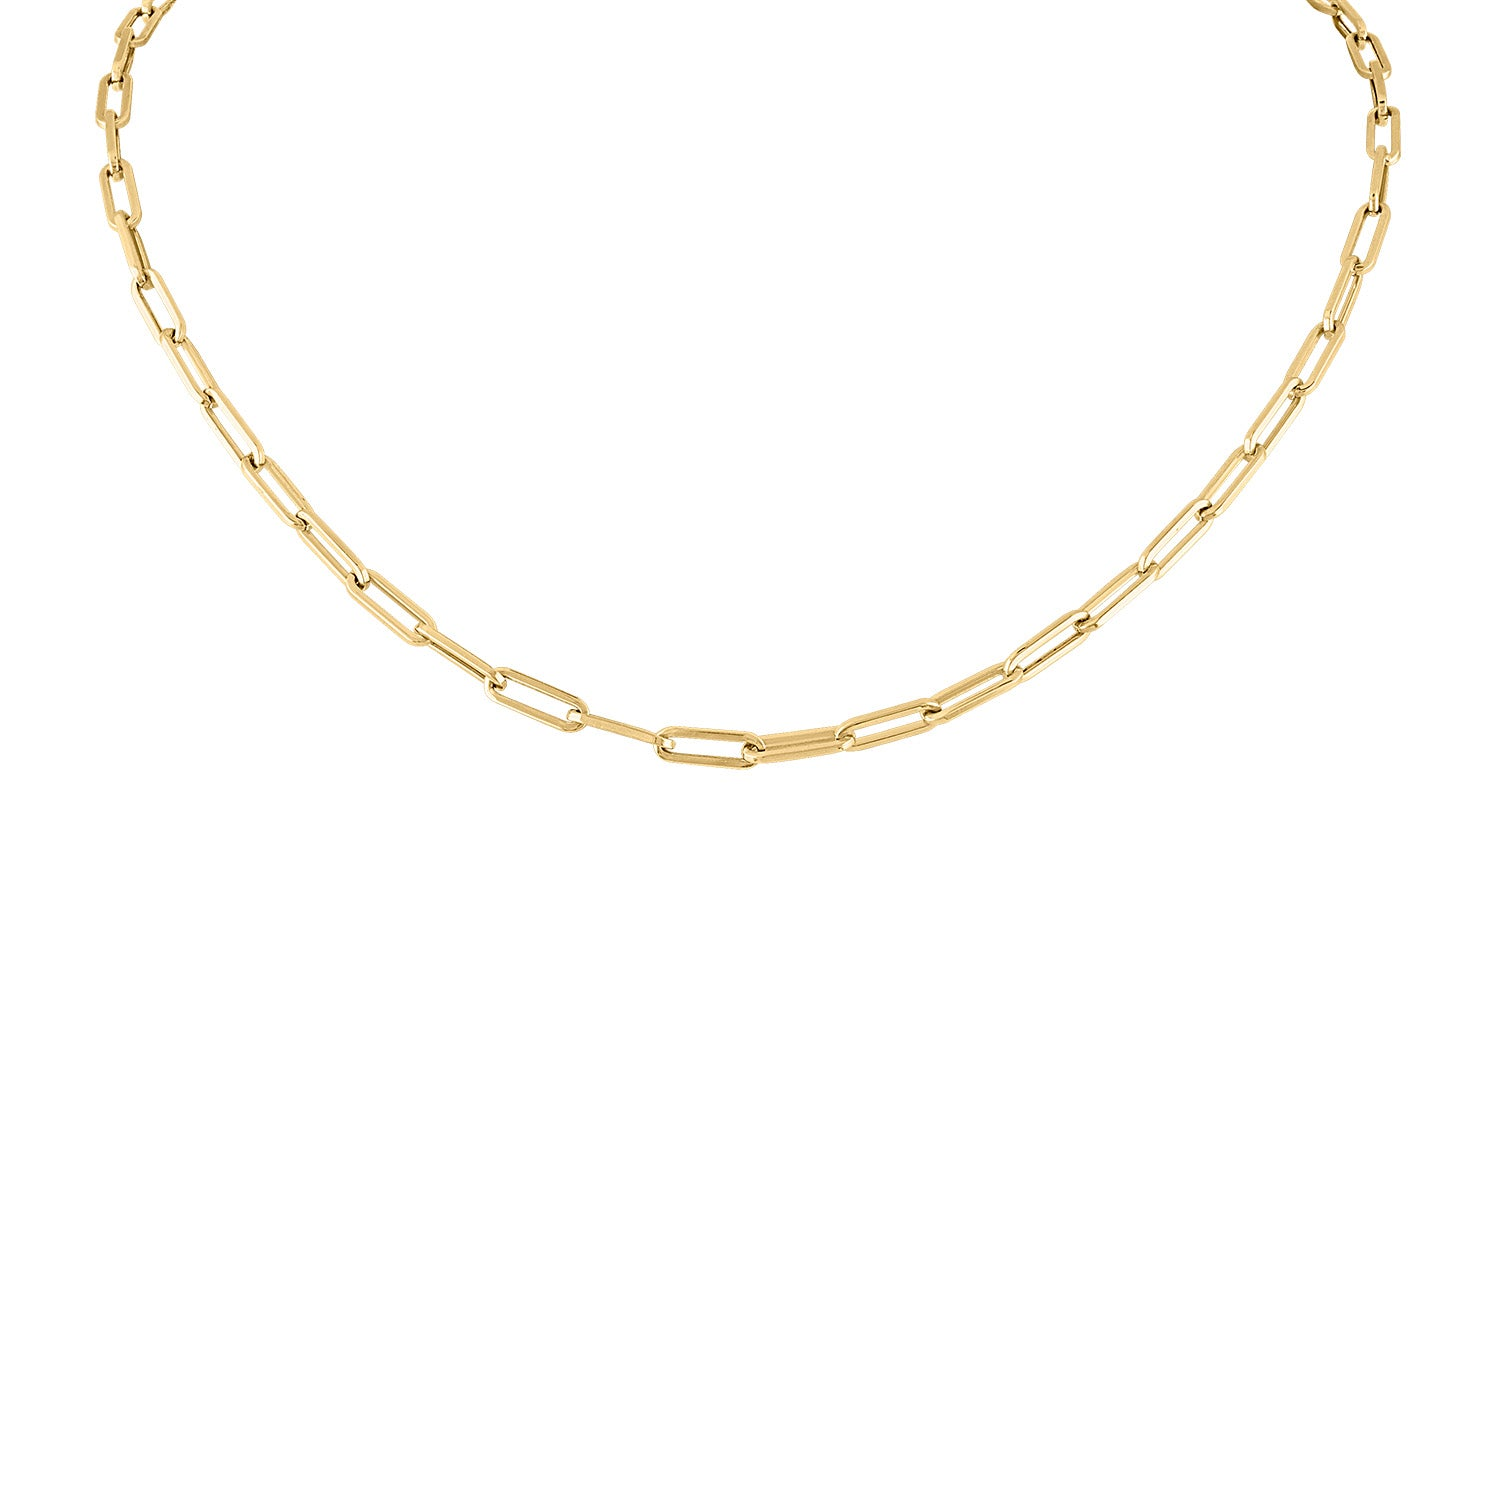 14KT GOLD XSMALL RECTANGLE LINK NECKLACE